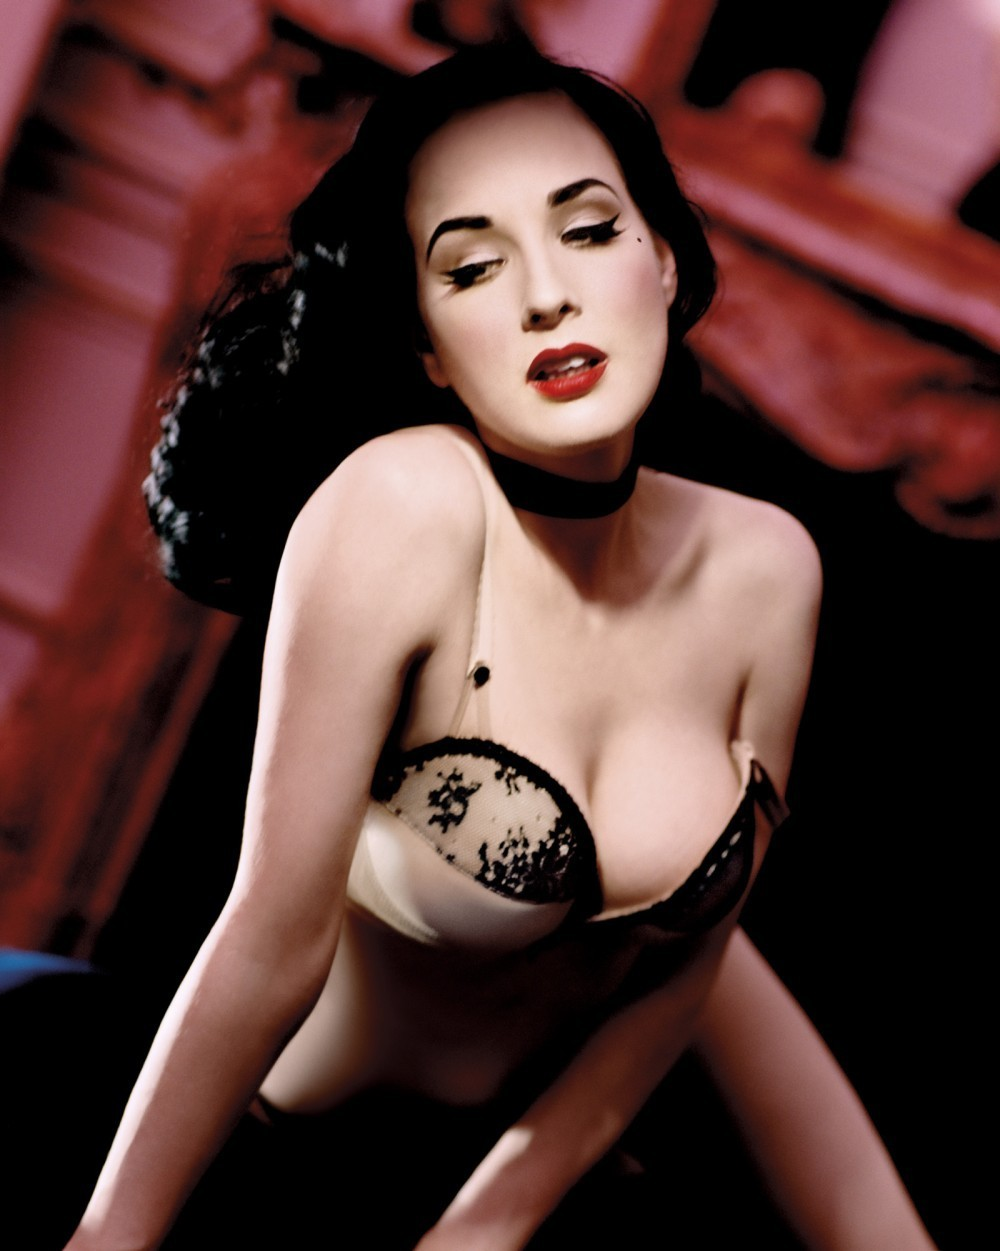 Dita Von Teese Backgrounds, Compatible - PC, Mobile, Gadgets| 1000x1251 px